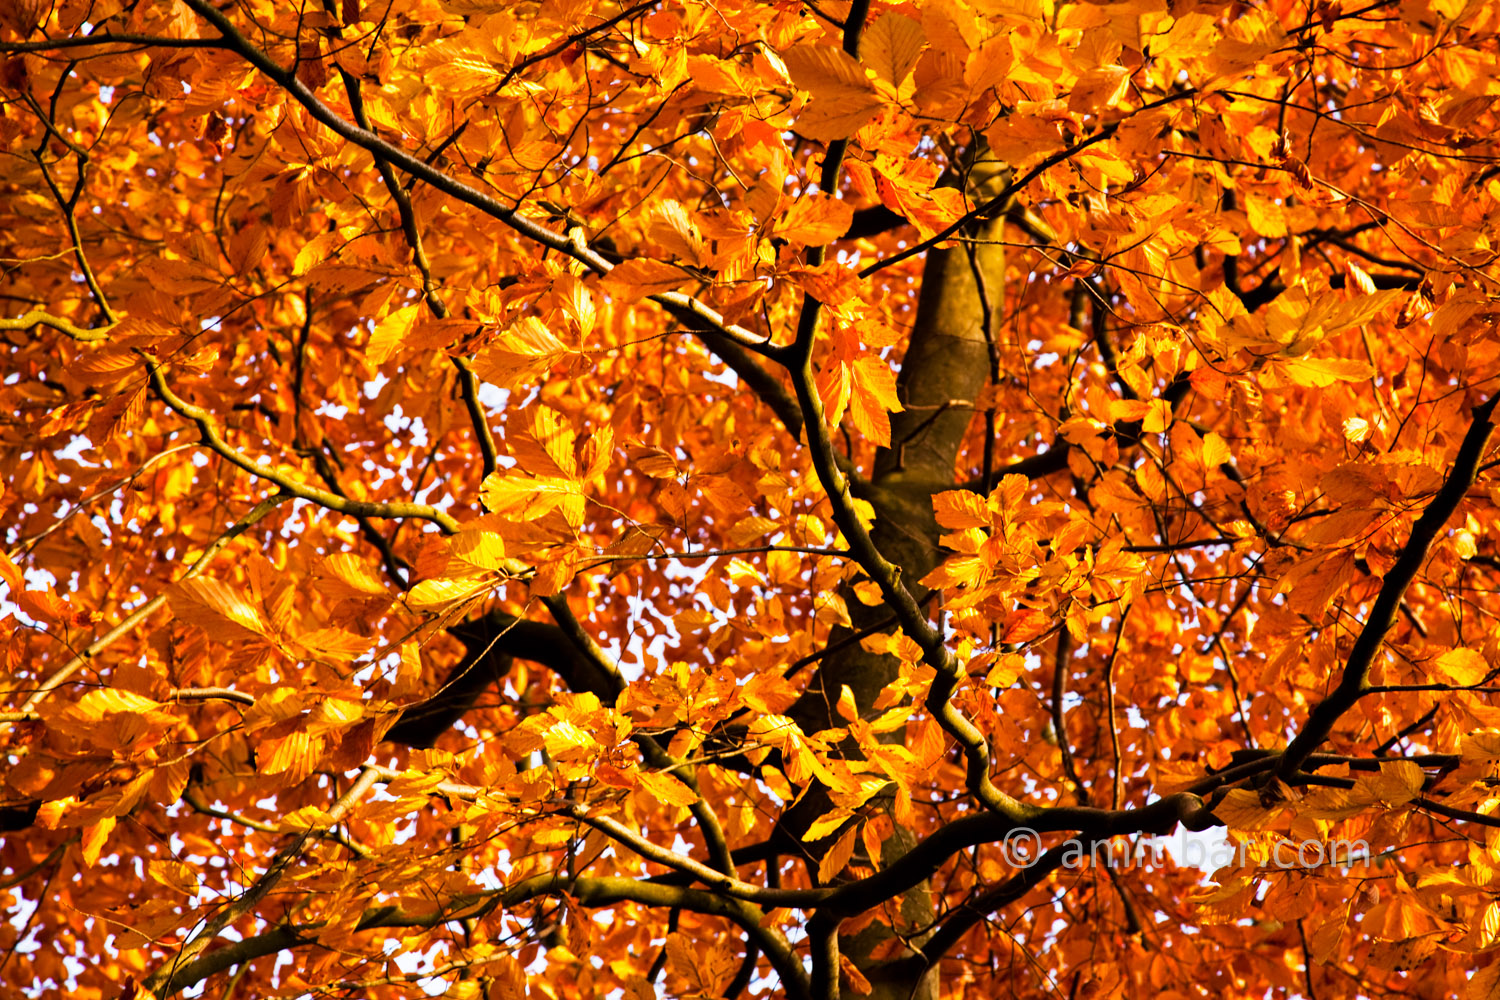 Autumn leaves XII: Automn leaves in De Achterhoek, The Netherlands